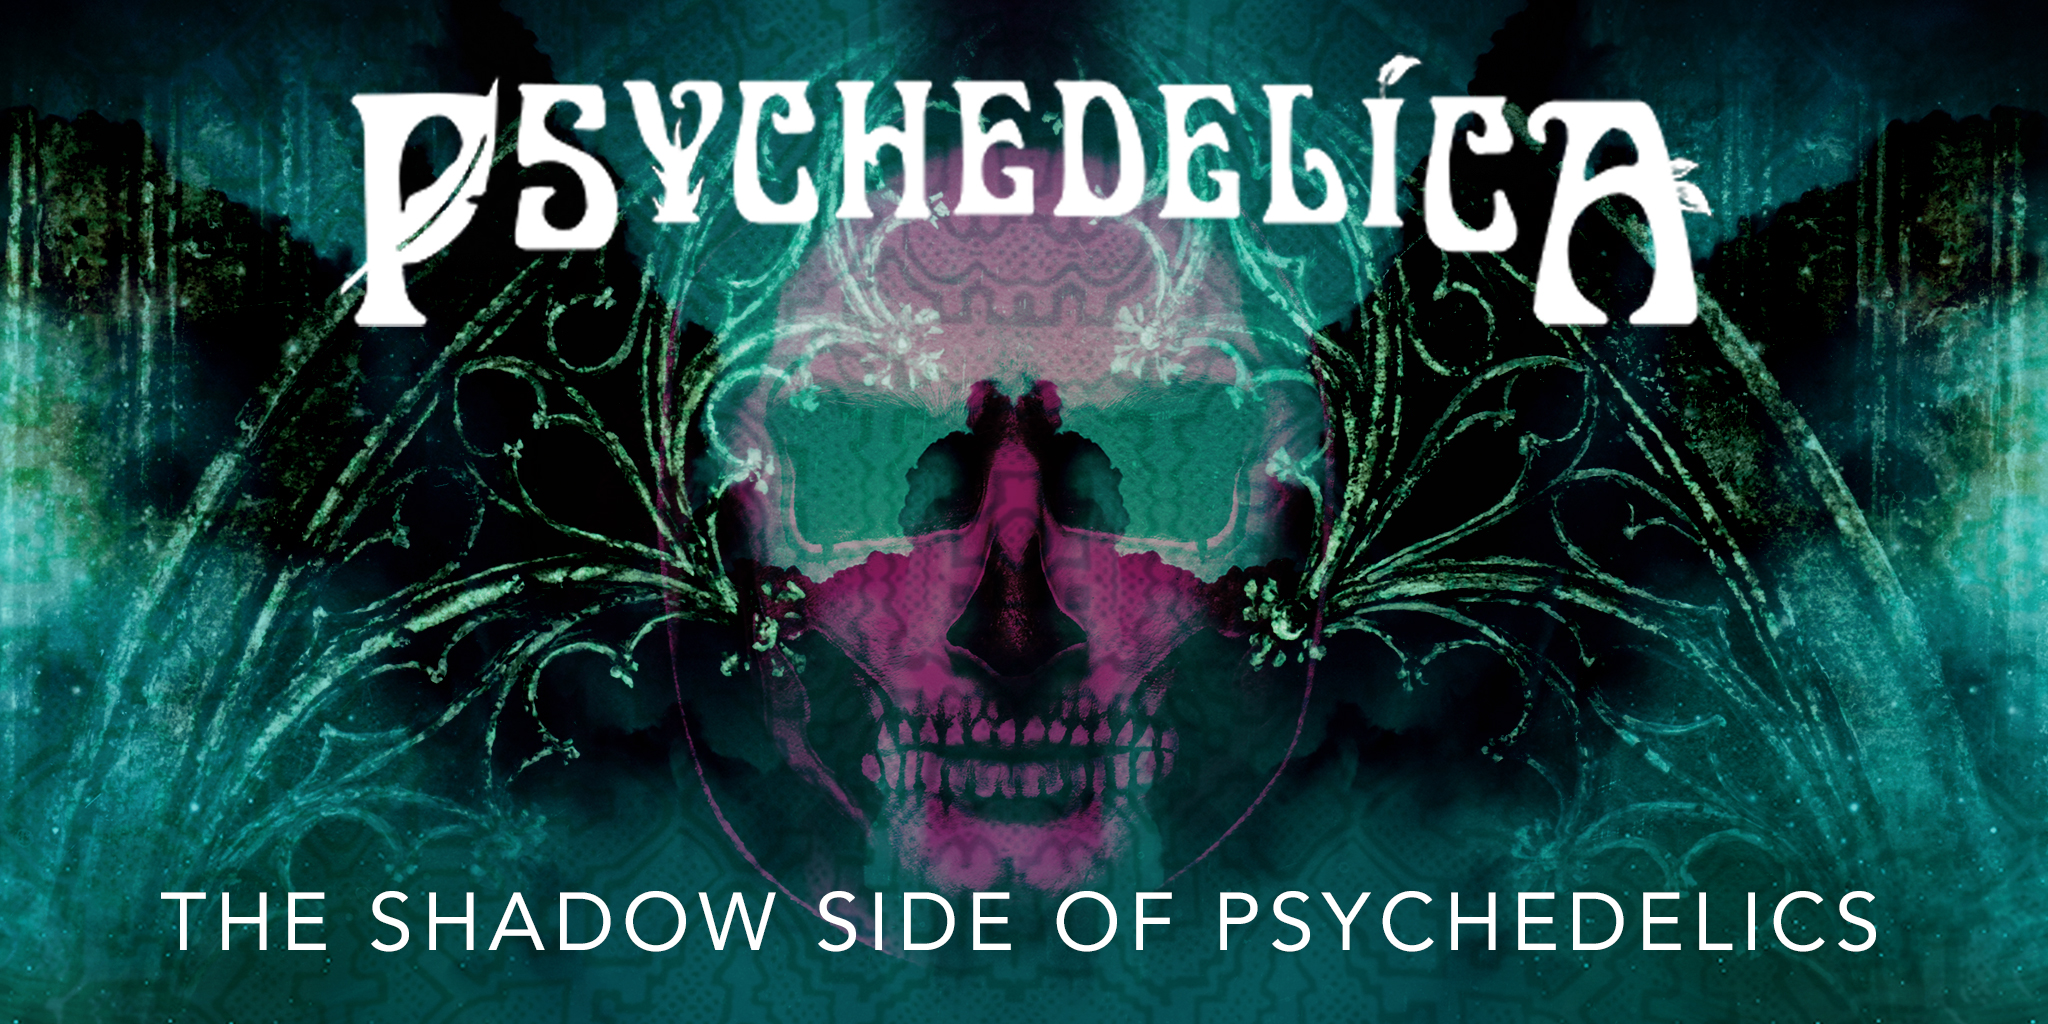 170872_p_e8_the-shadow-side-of-psychedelics_2048x1024.jpg